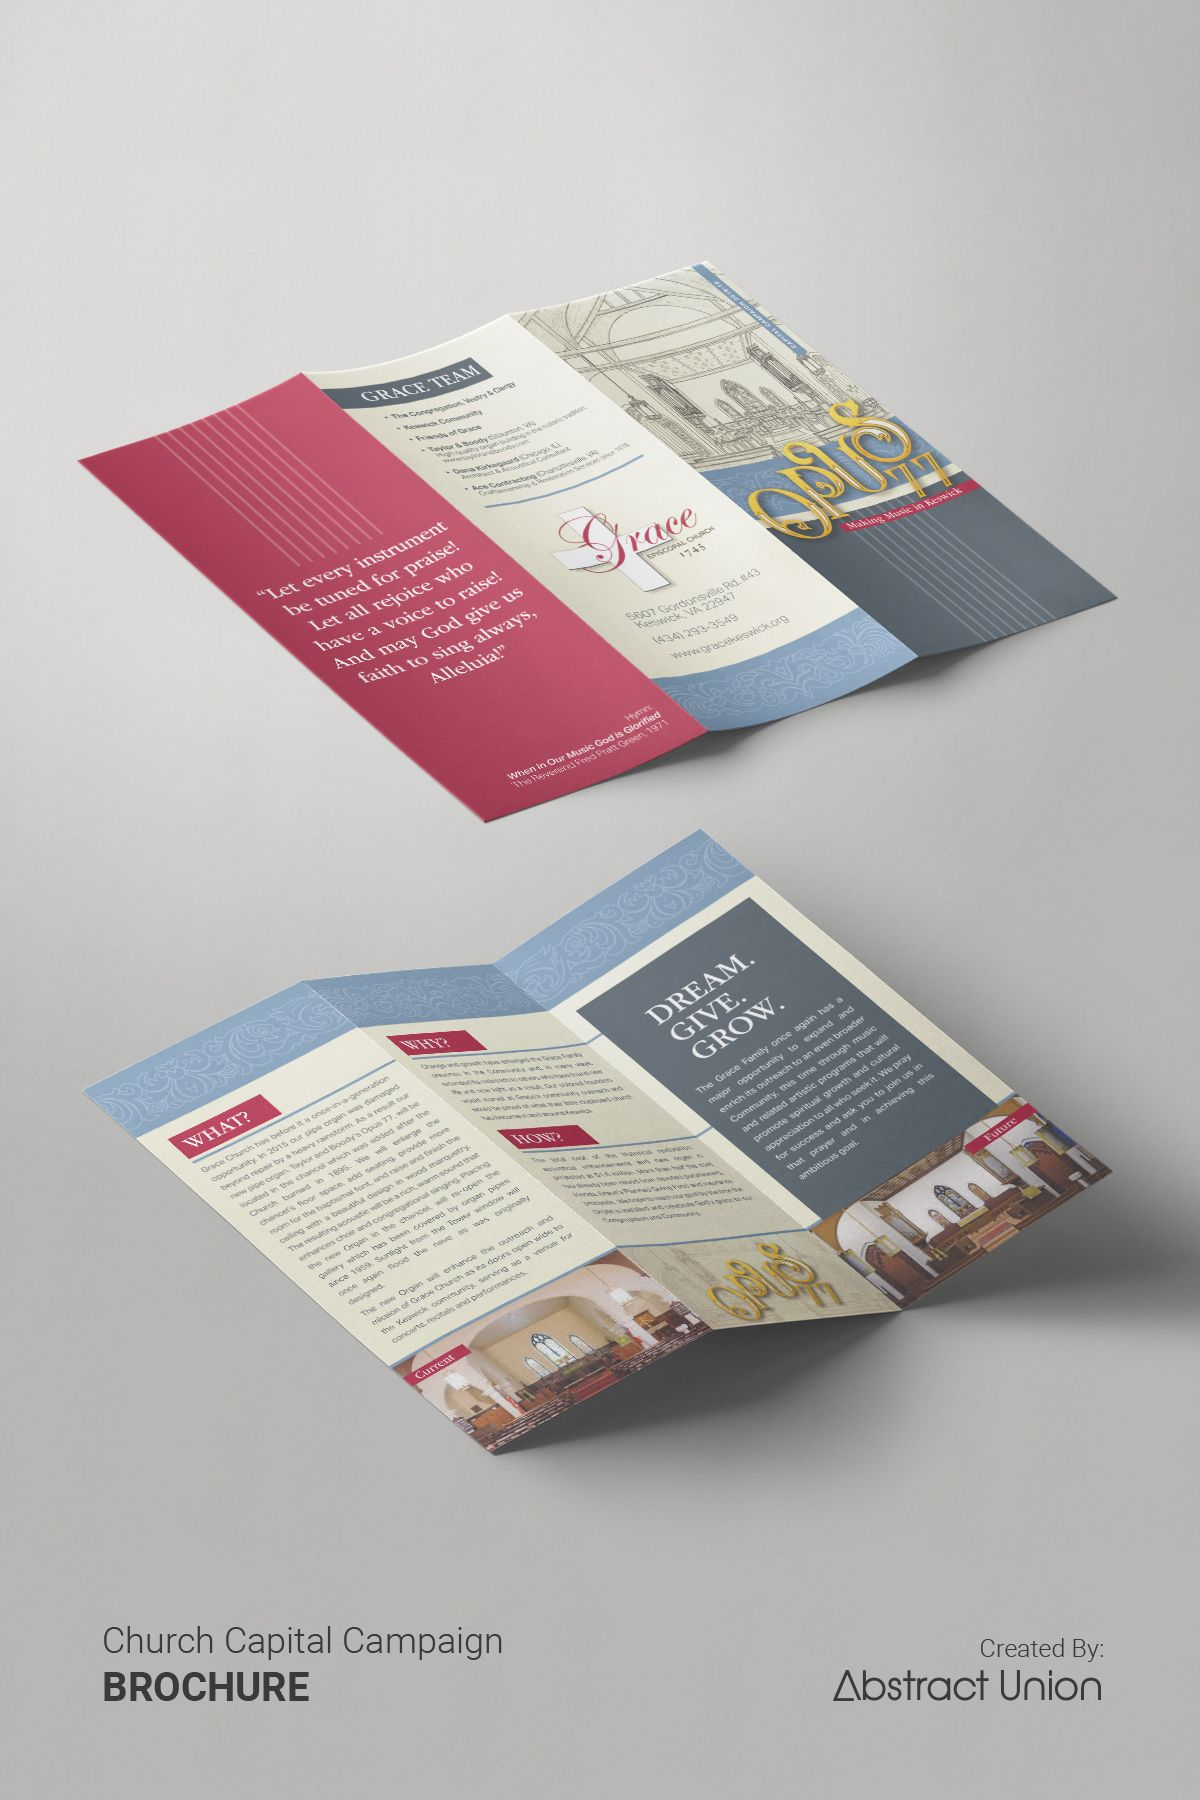 capital campaign brochures design ideas our client wanted a